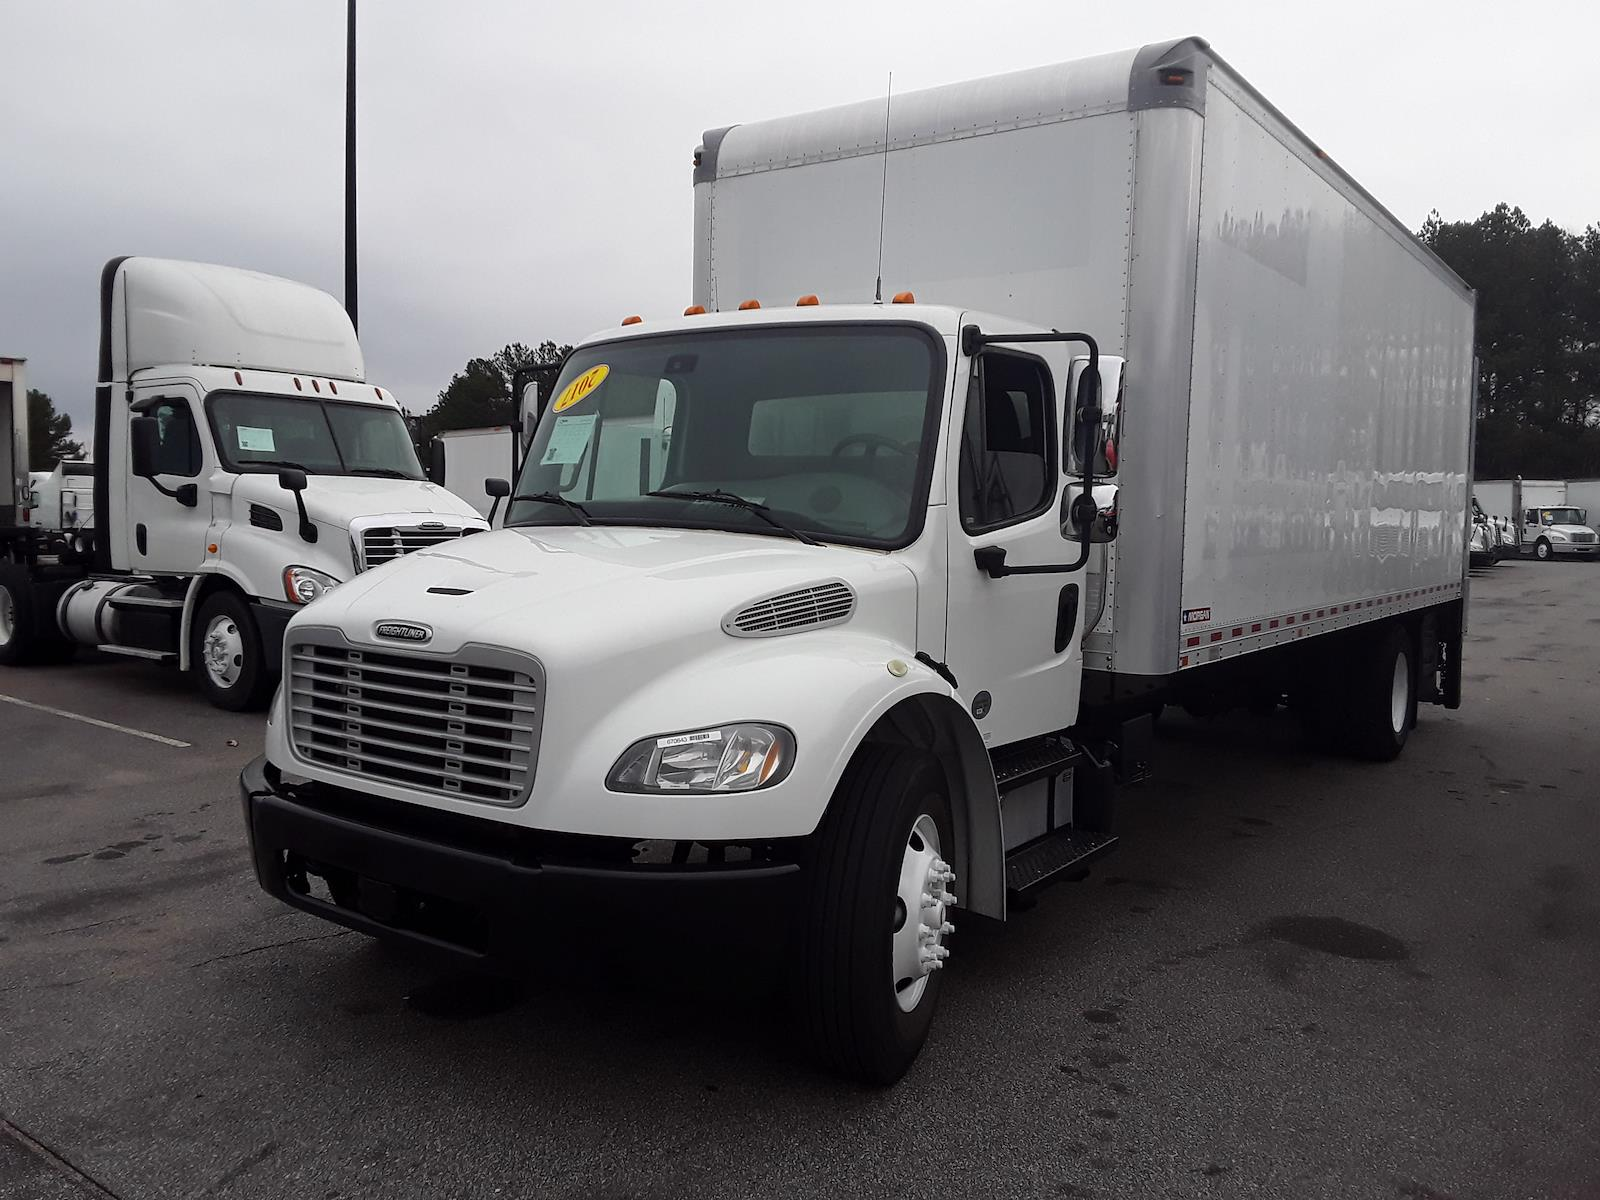 2017 Freightliner Truck 4x2, Dry Freight #670643 - photo 1